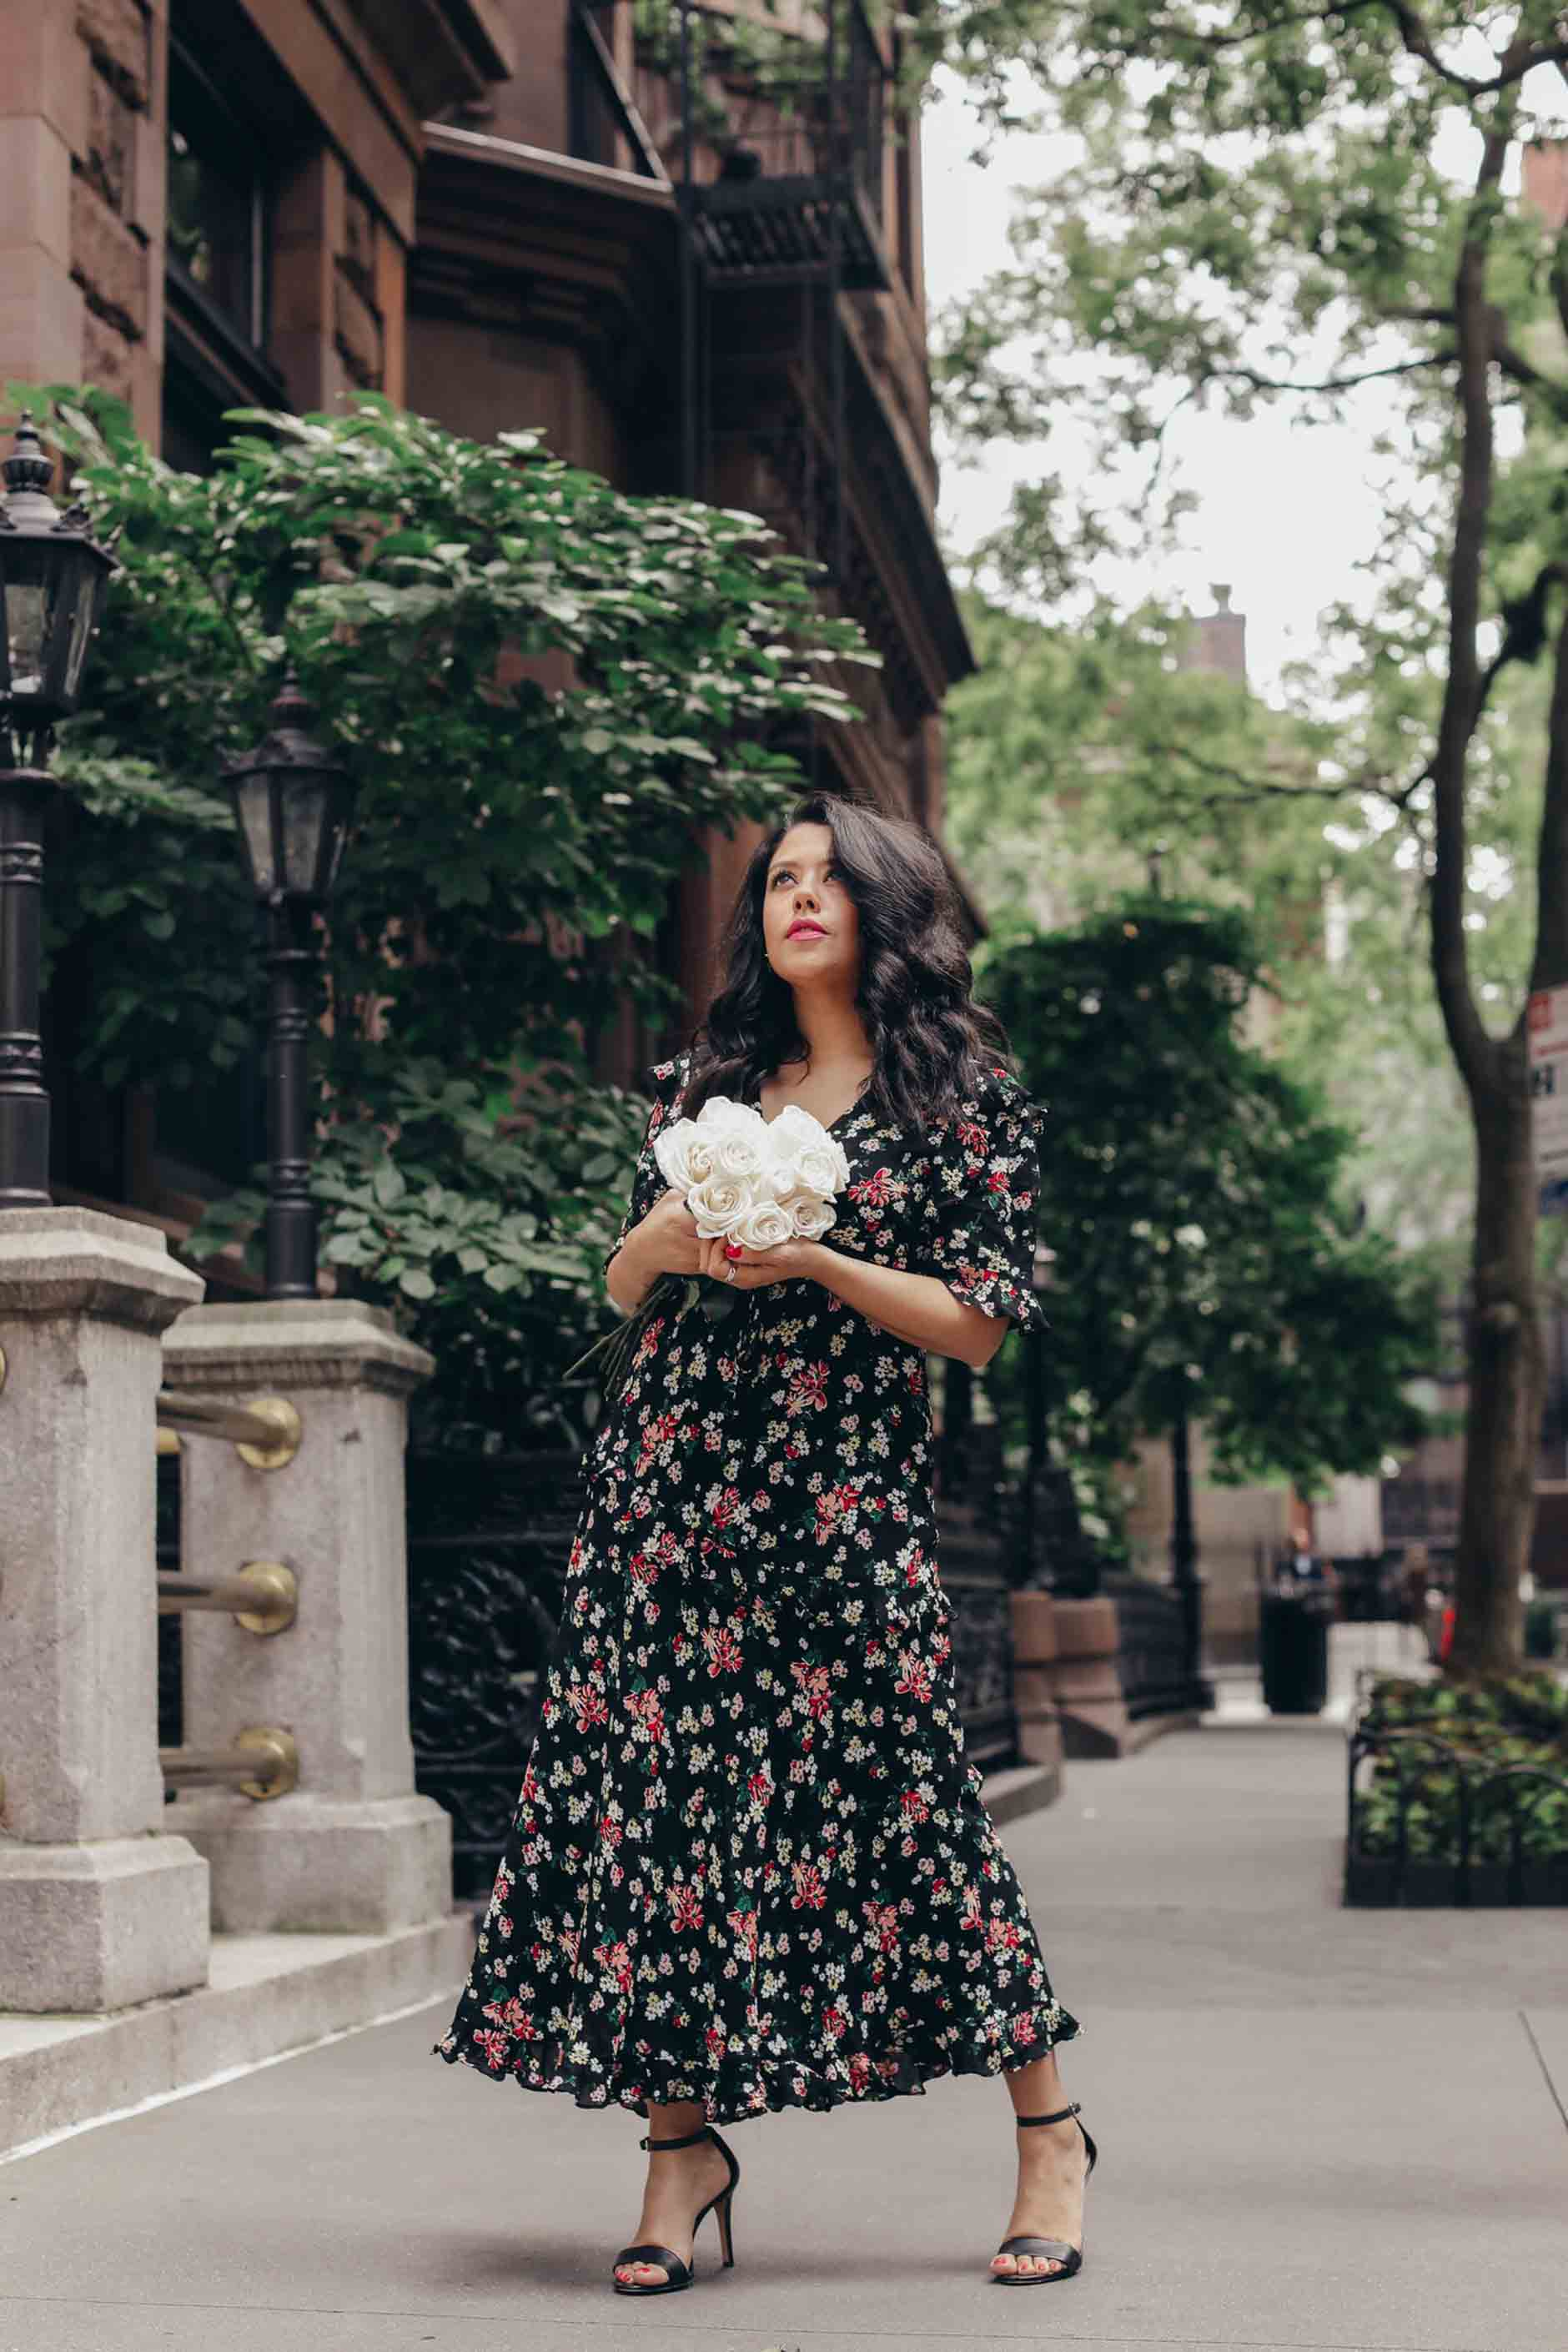 naty michele in a floral dress holding white roses